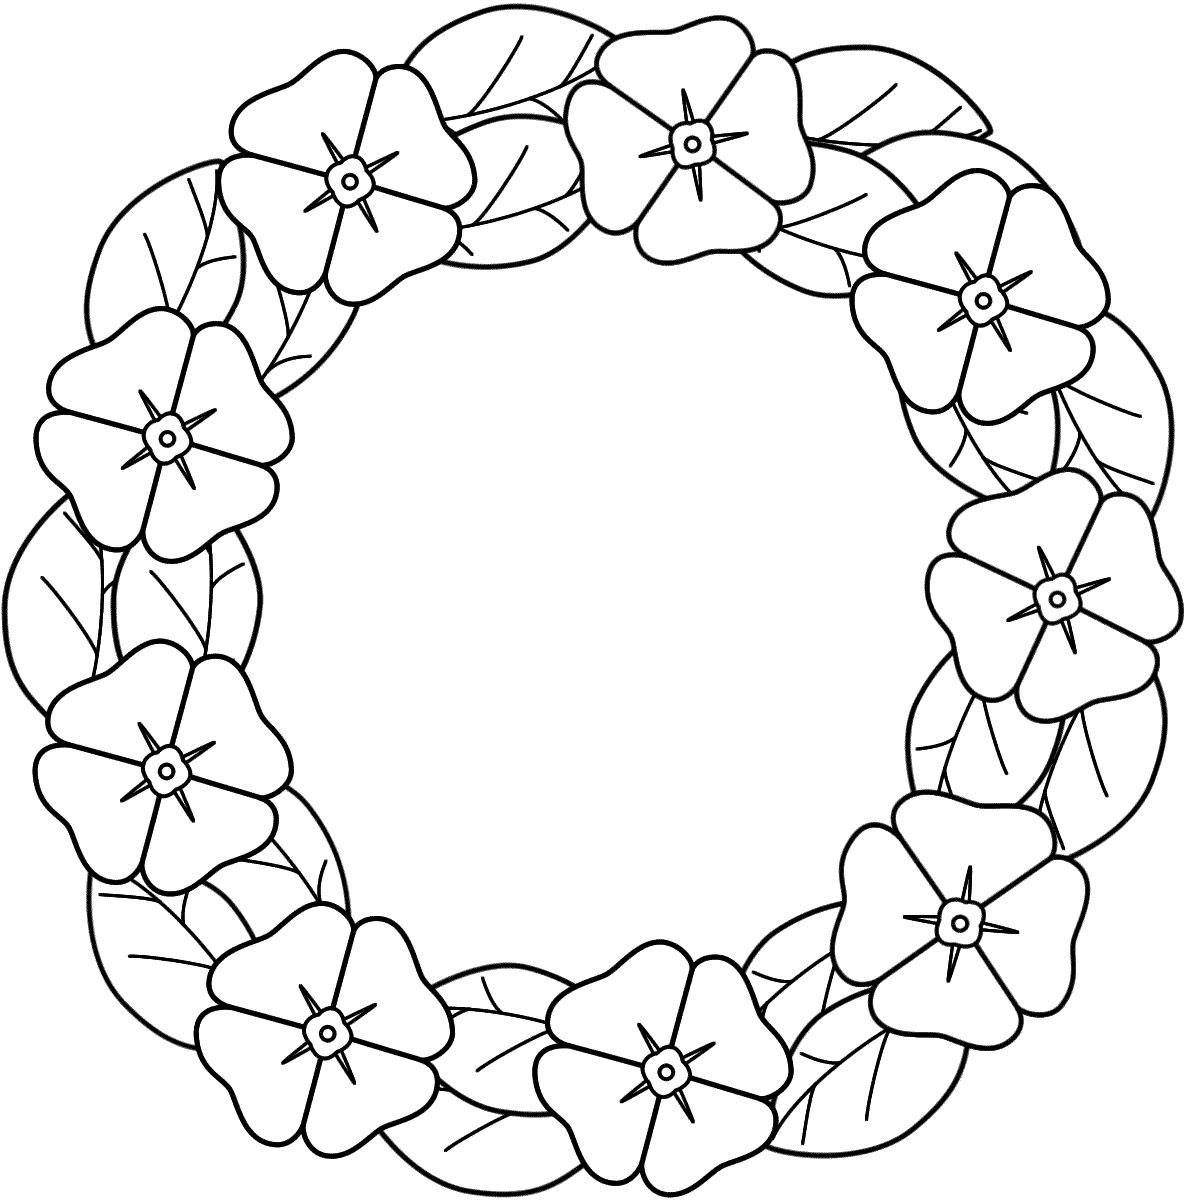 Wreath coloring pages download and print for free